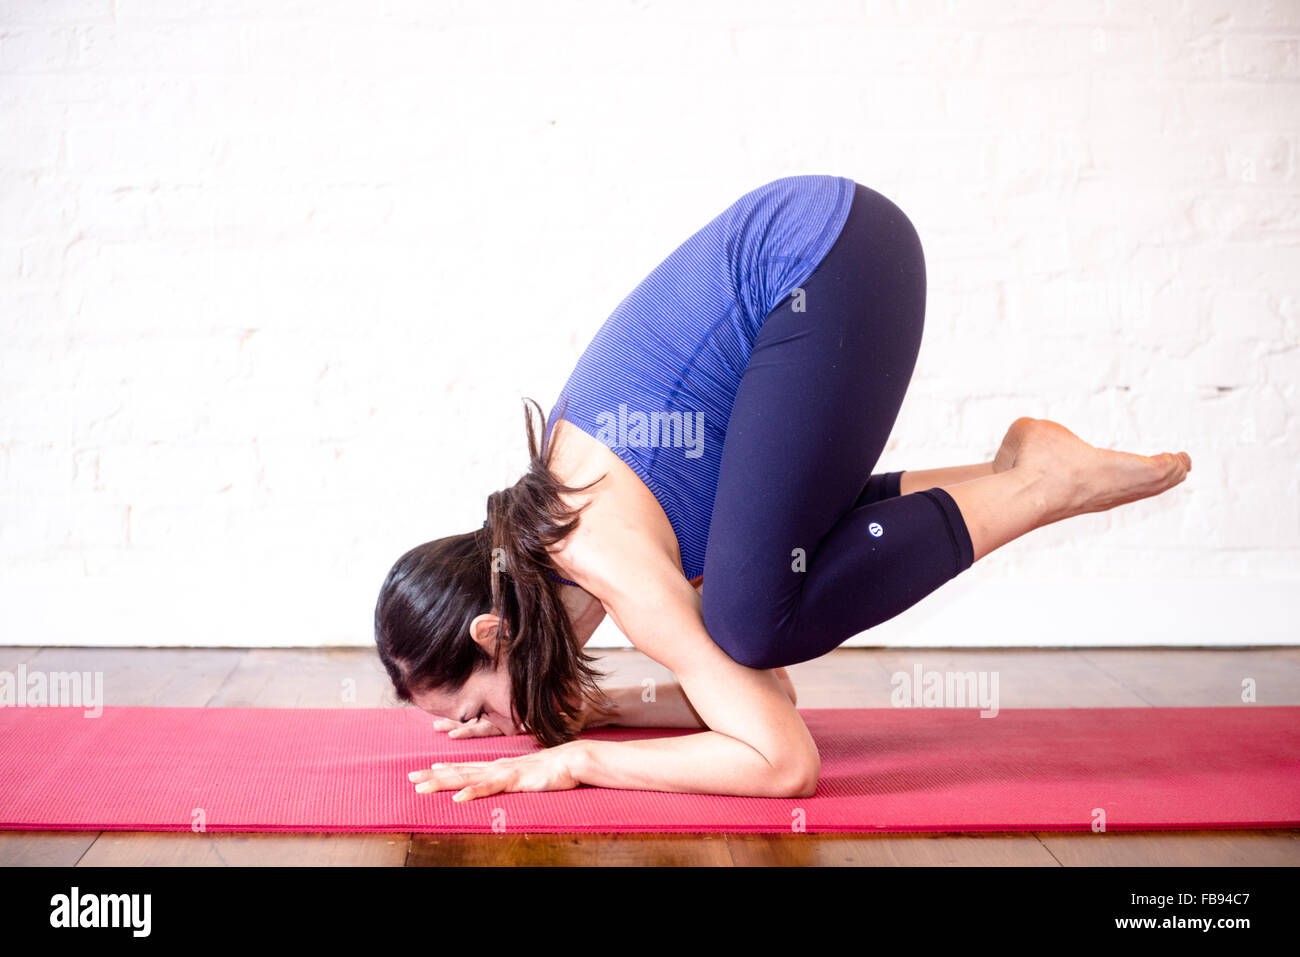 woman doing yoga turtle pose balancing knees on the back of arms - Stock Image